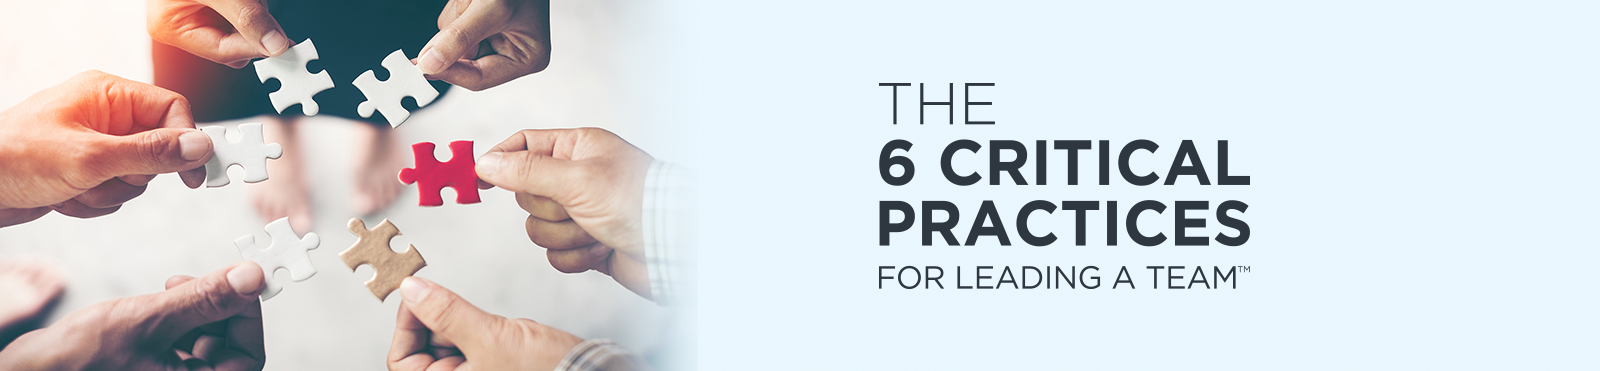 6 Critical Practices for Leading a Team